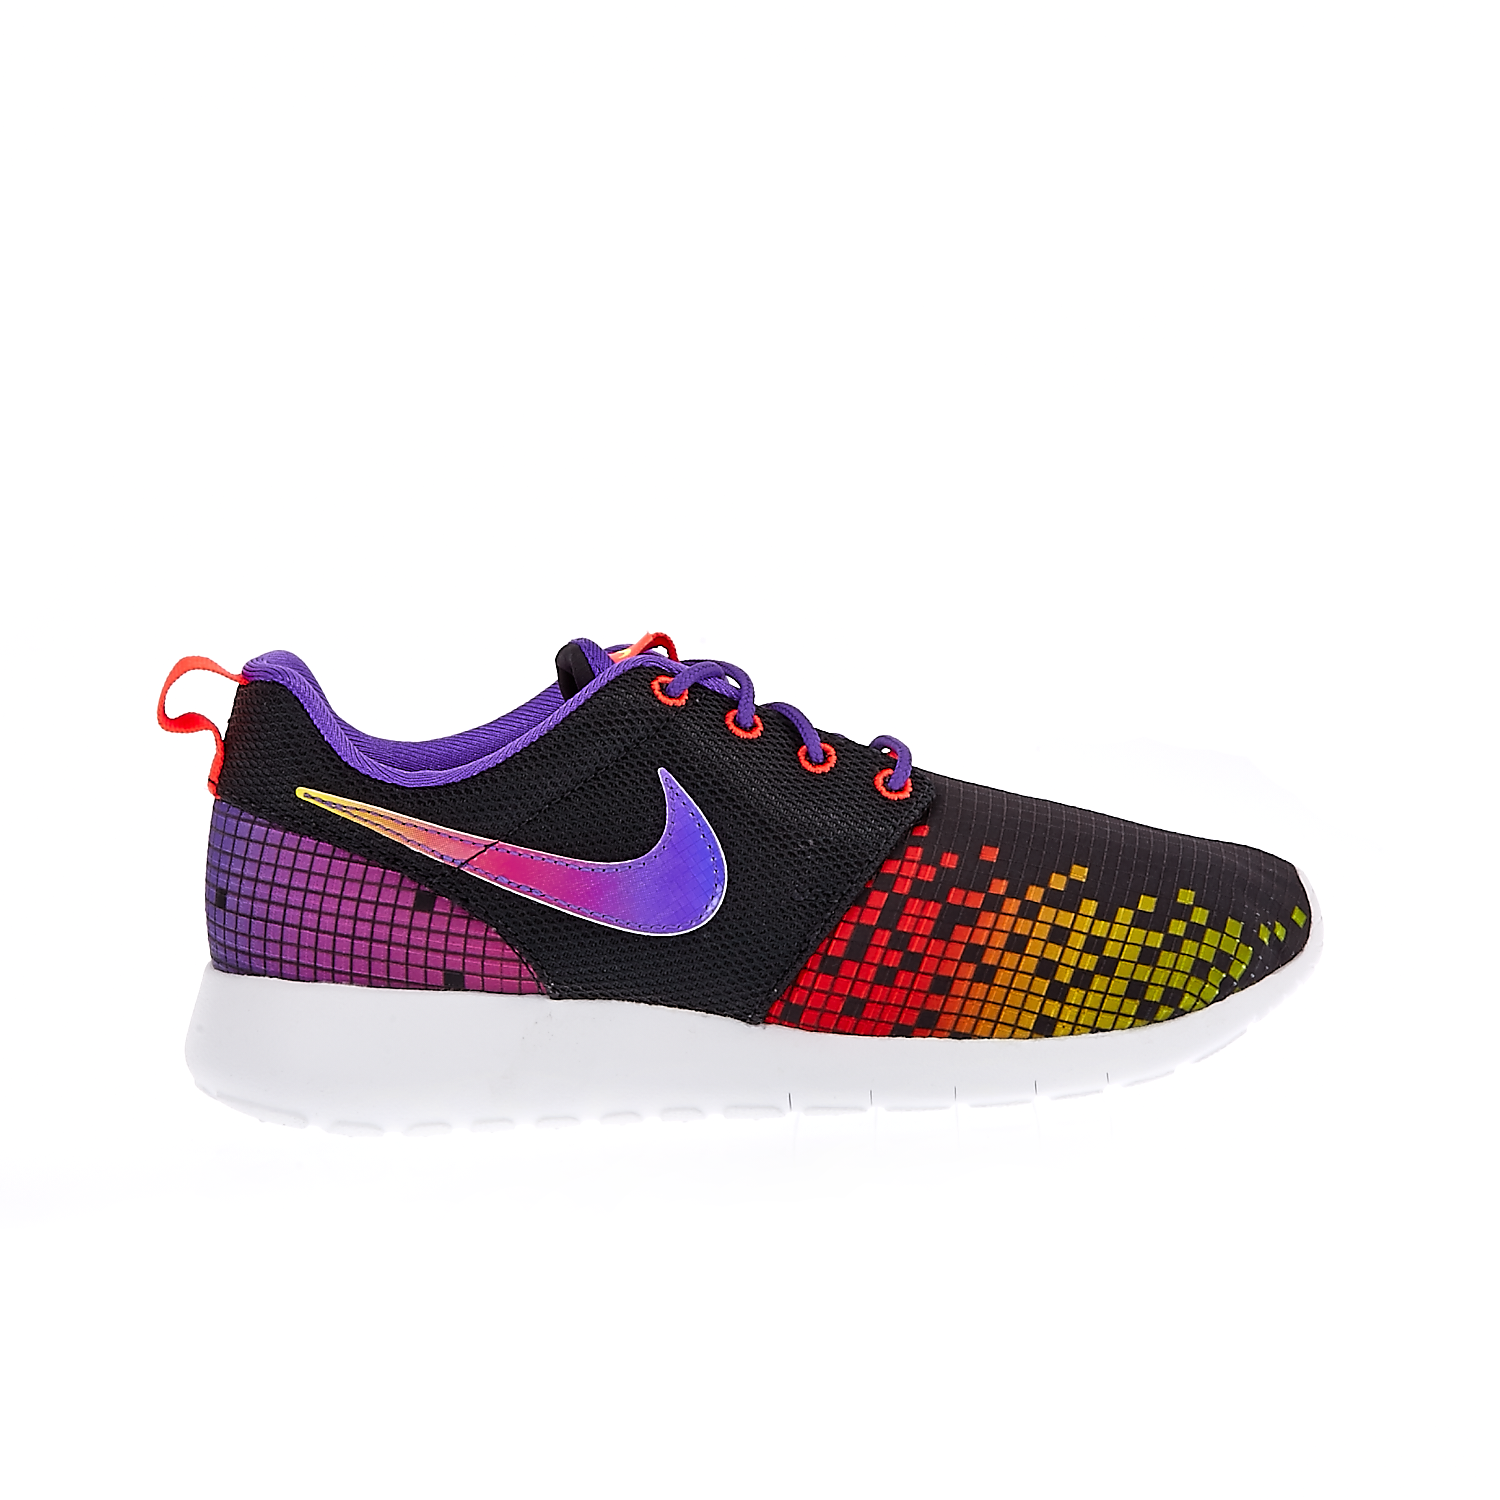 NIKE – Παιδικά αθλητικά παπούτσια NIKE ROSHE ONE PRINT μαύρα εμπριμέ